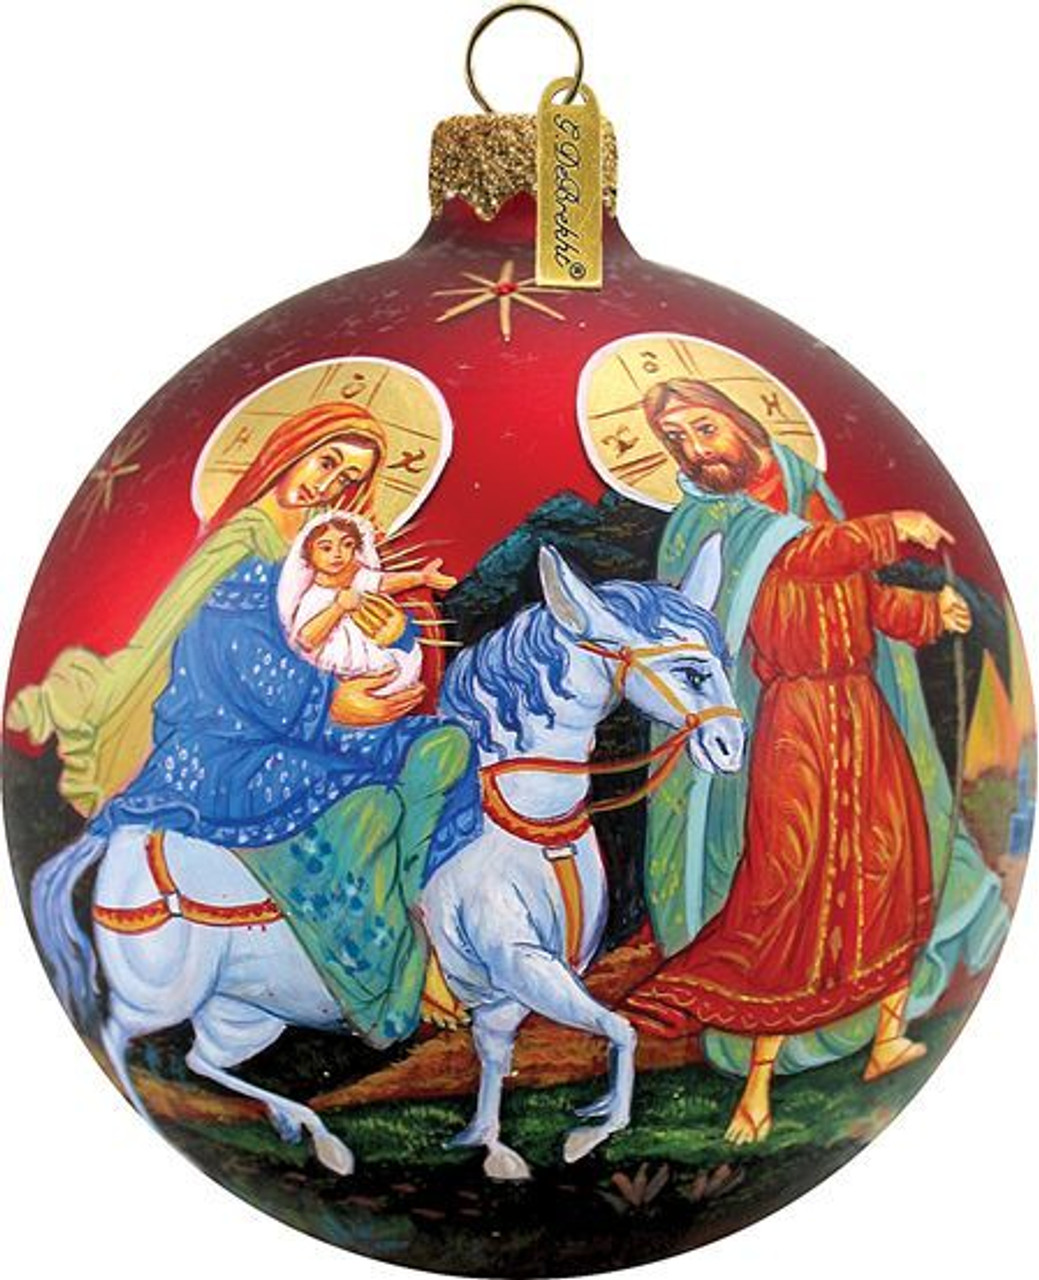 Vintage Style Christmas Ornaments.Holy Family Christmas Ornament Red Vintage Style Art Glass 3 1 2